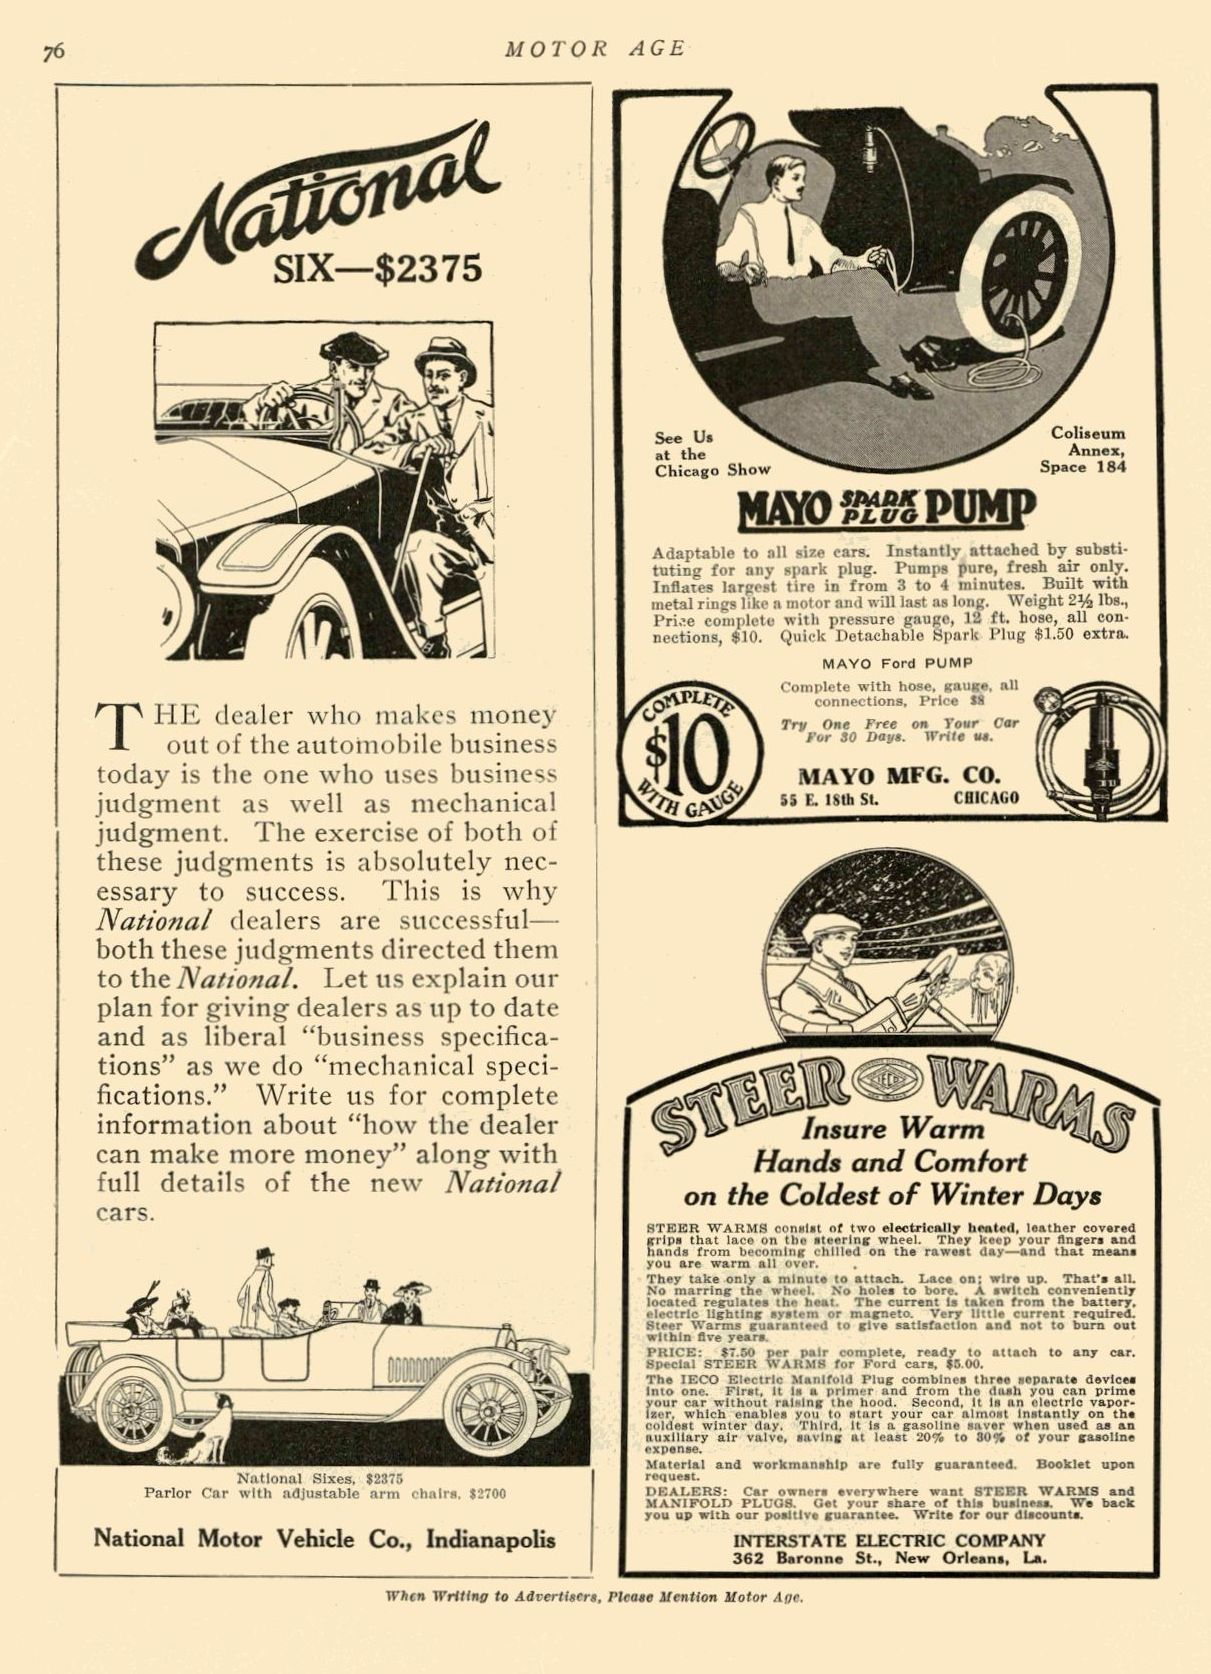 """ca. 1914 NATIONAL National """"SIX"""" $2375 National Motor Vehicle Co. Indianapolis, IND MOTOR AGE ca. 1914 8.5″x12″ page 76"""